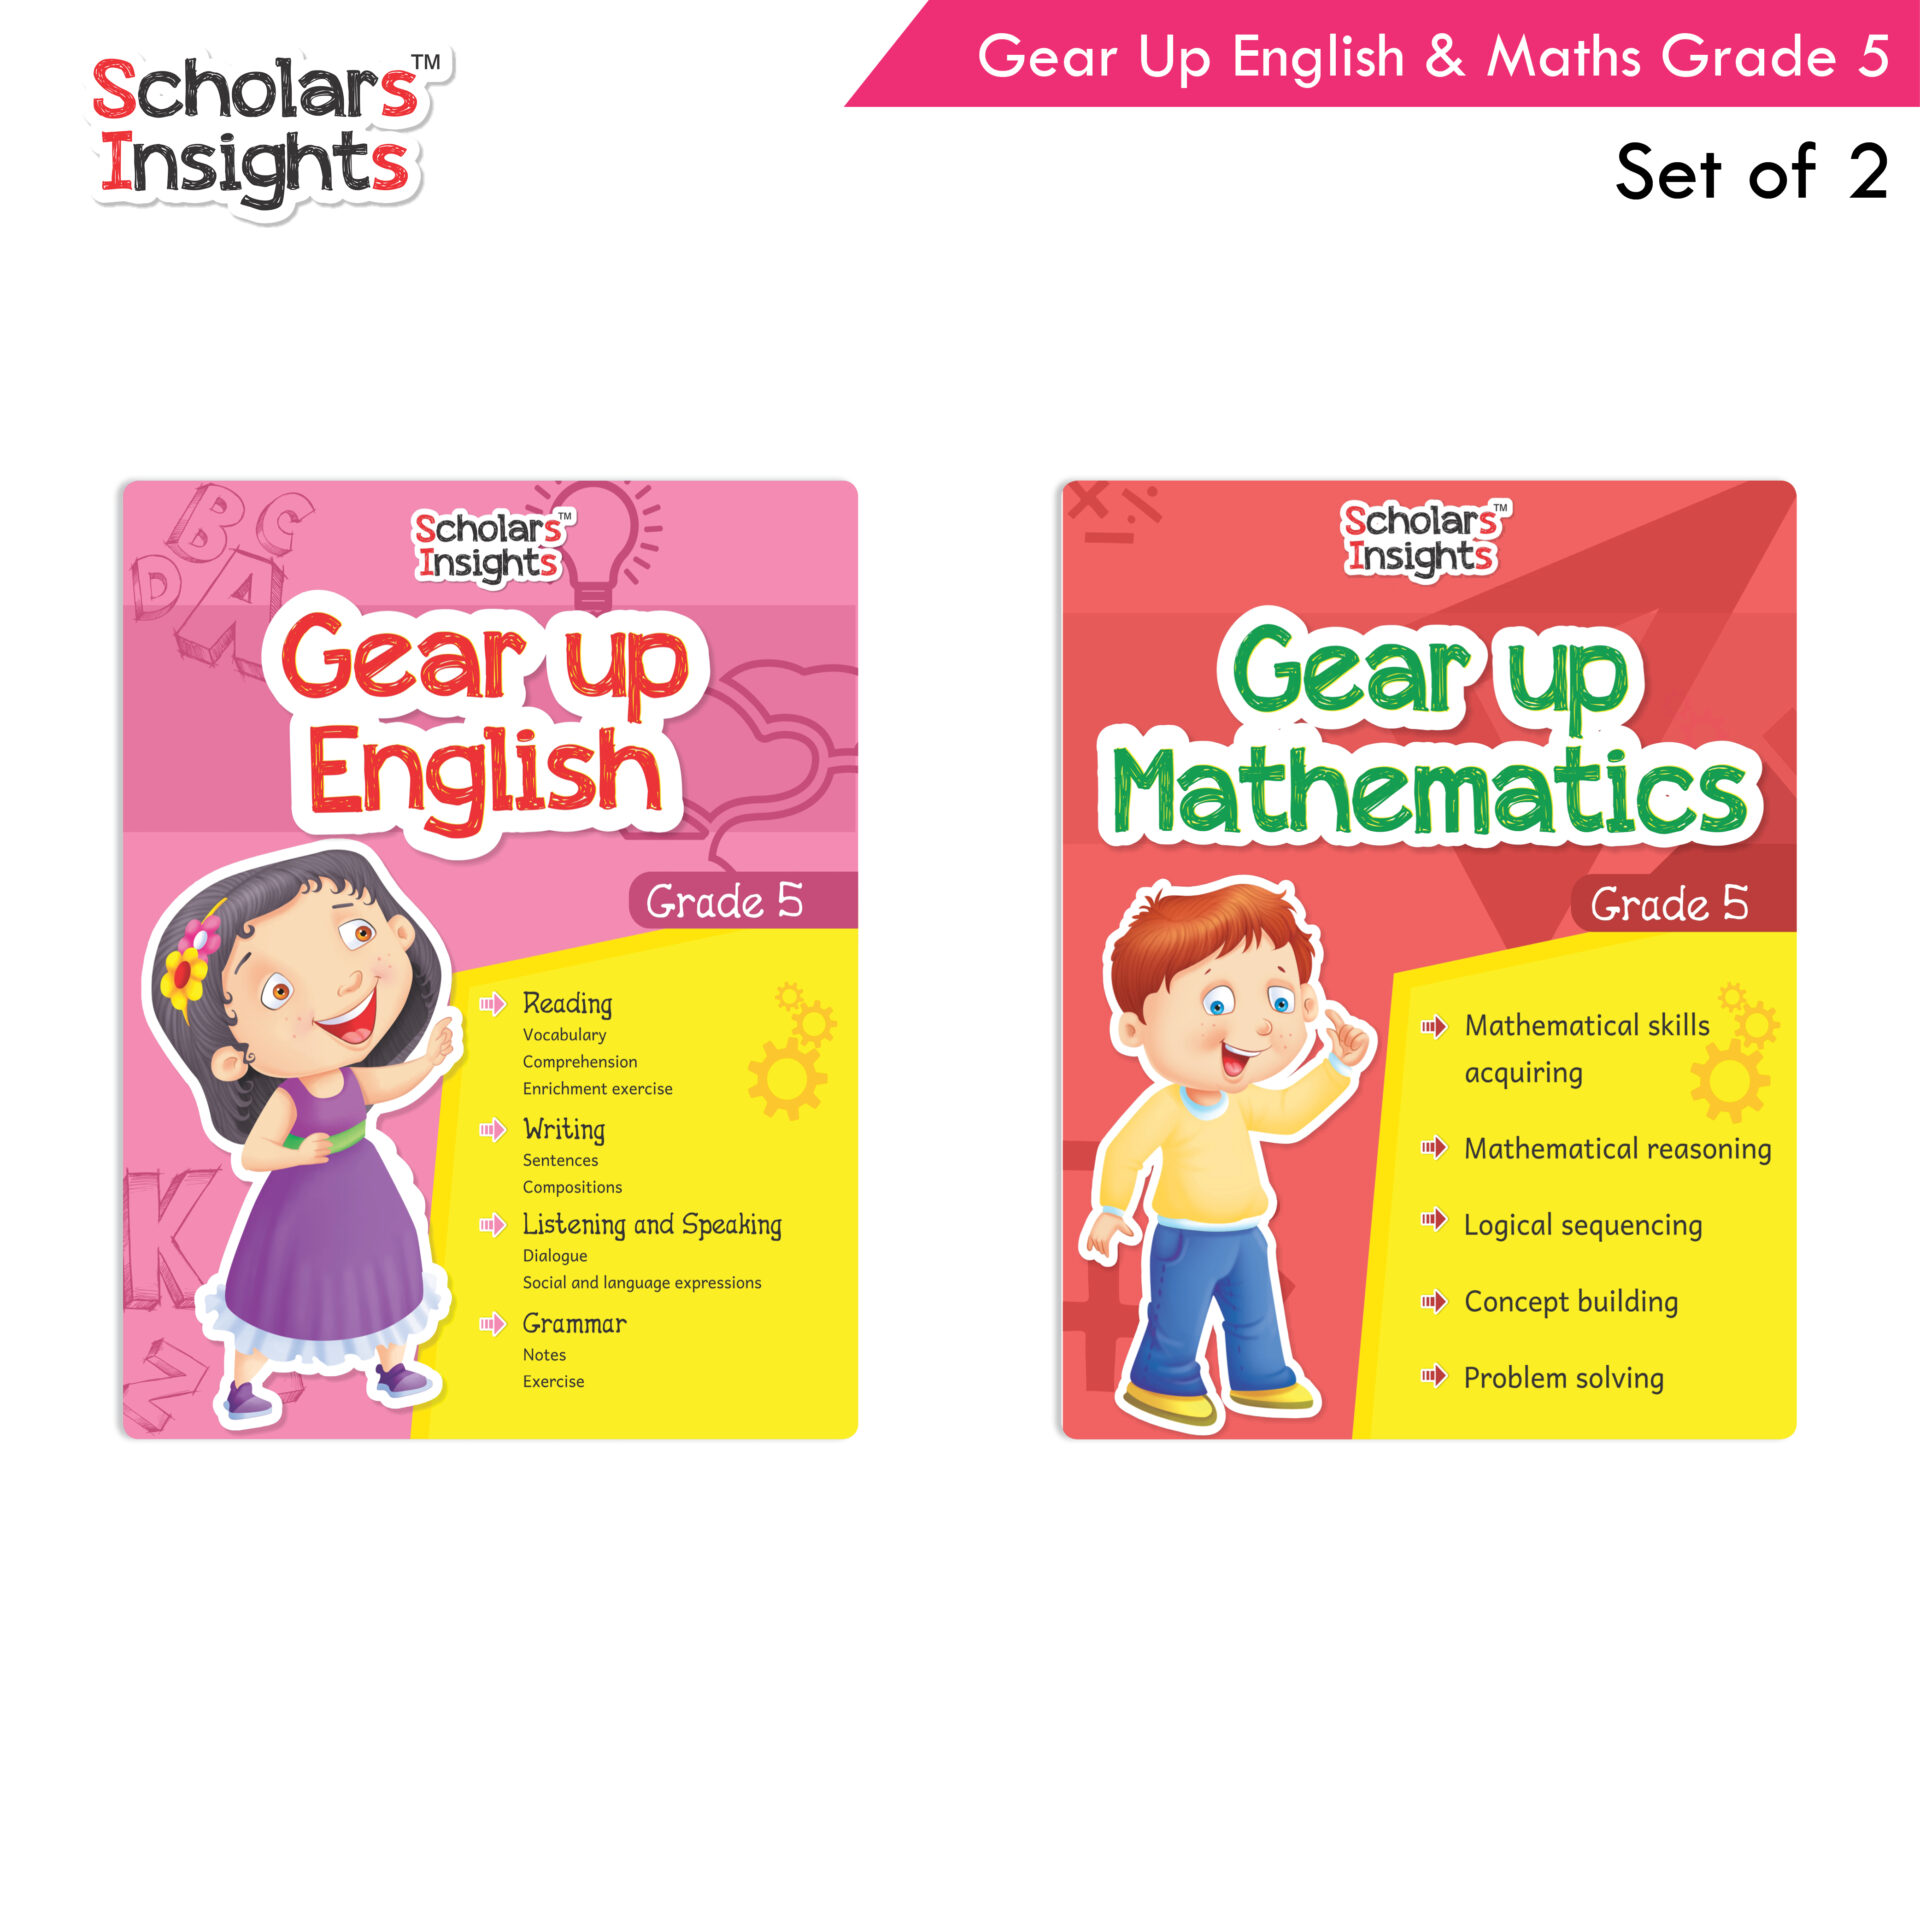 Scholars Insights Gear Up English and Maths Grade 5 Set of 2 1